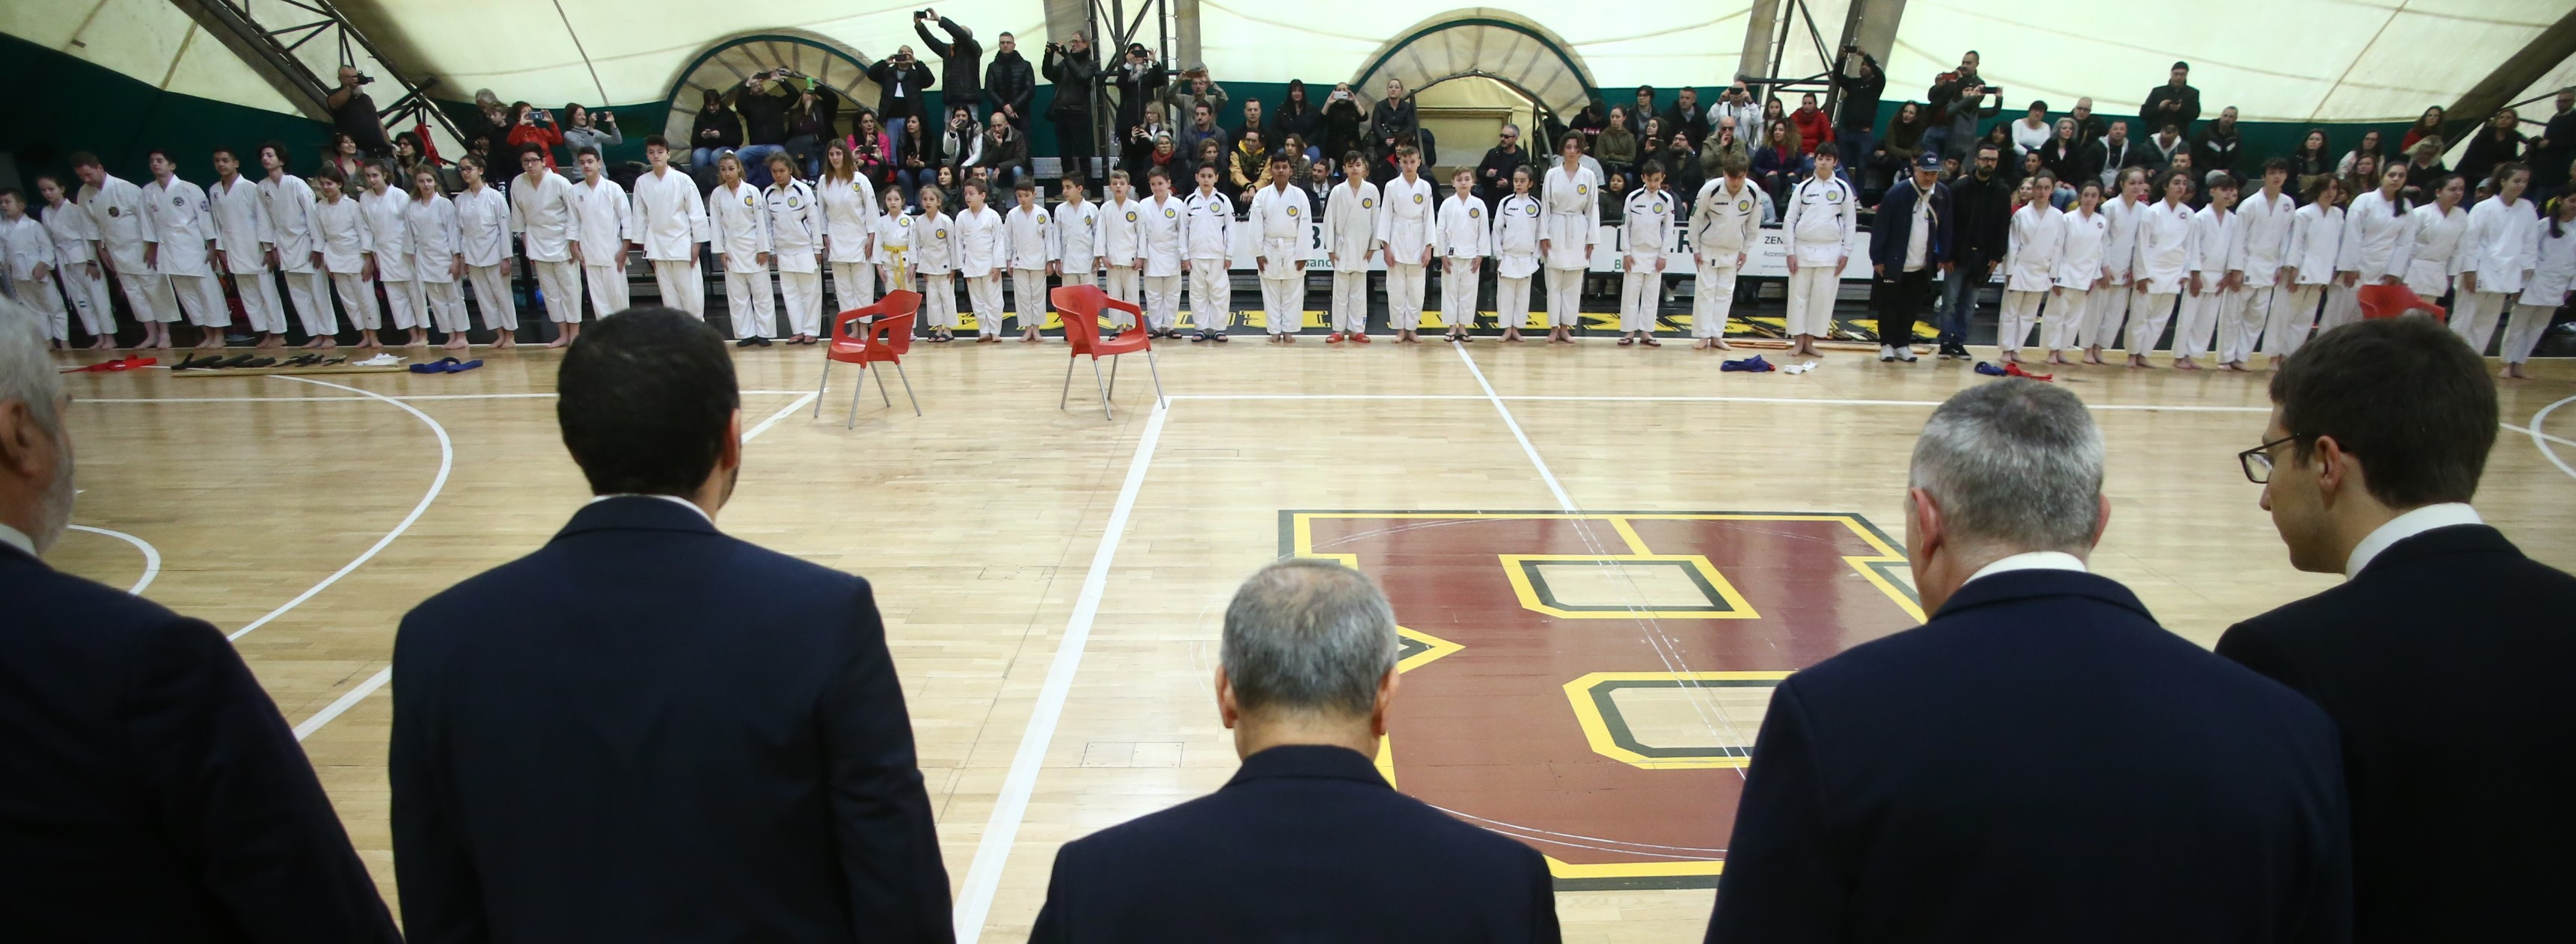 9th kobudo meeting.jpg - 736.81 Kb